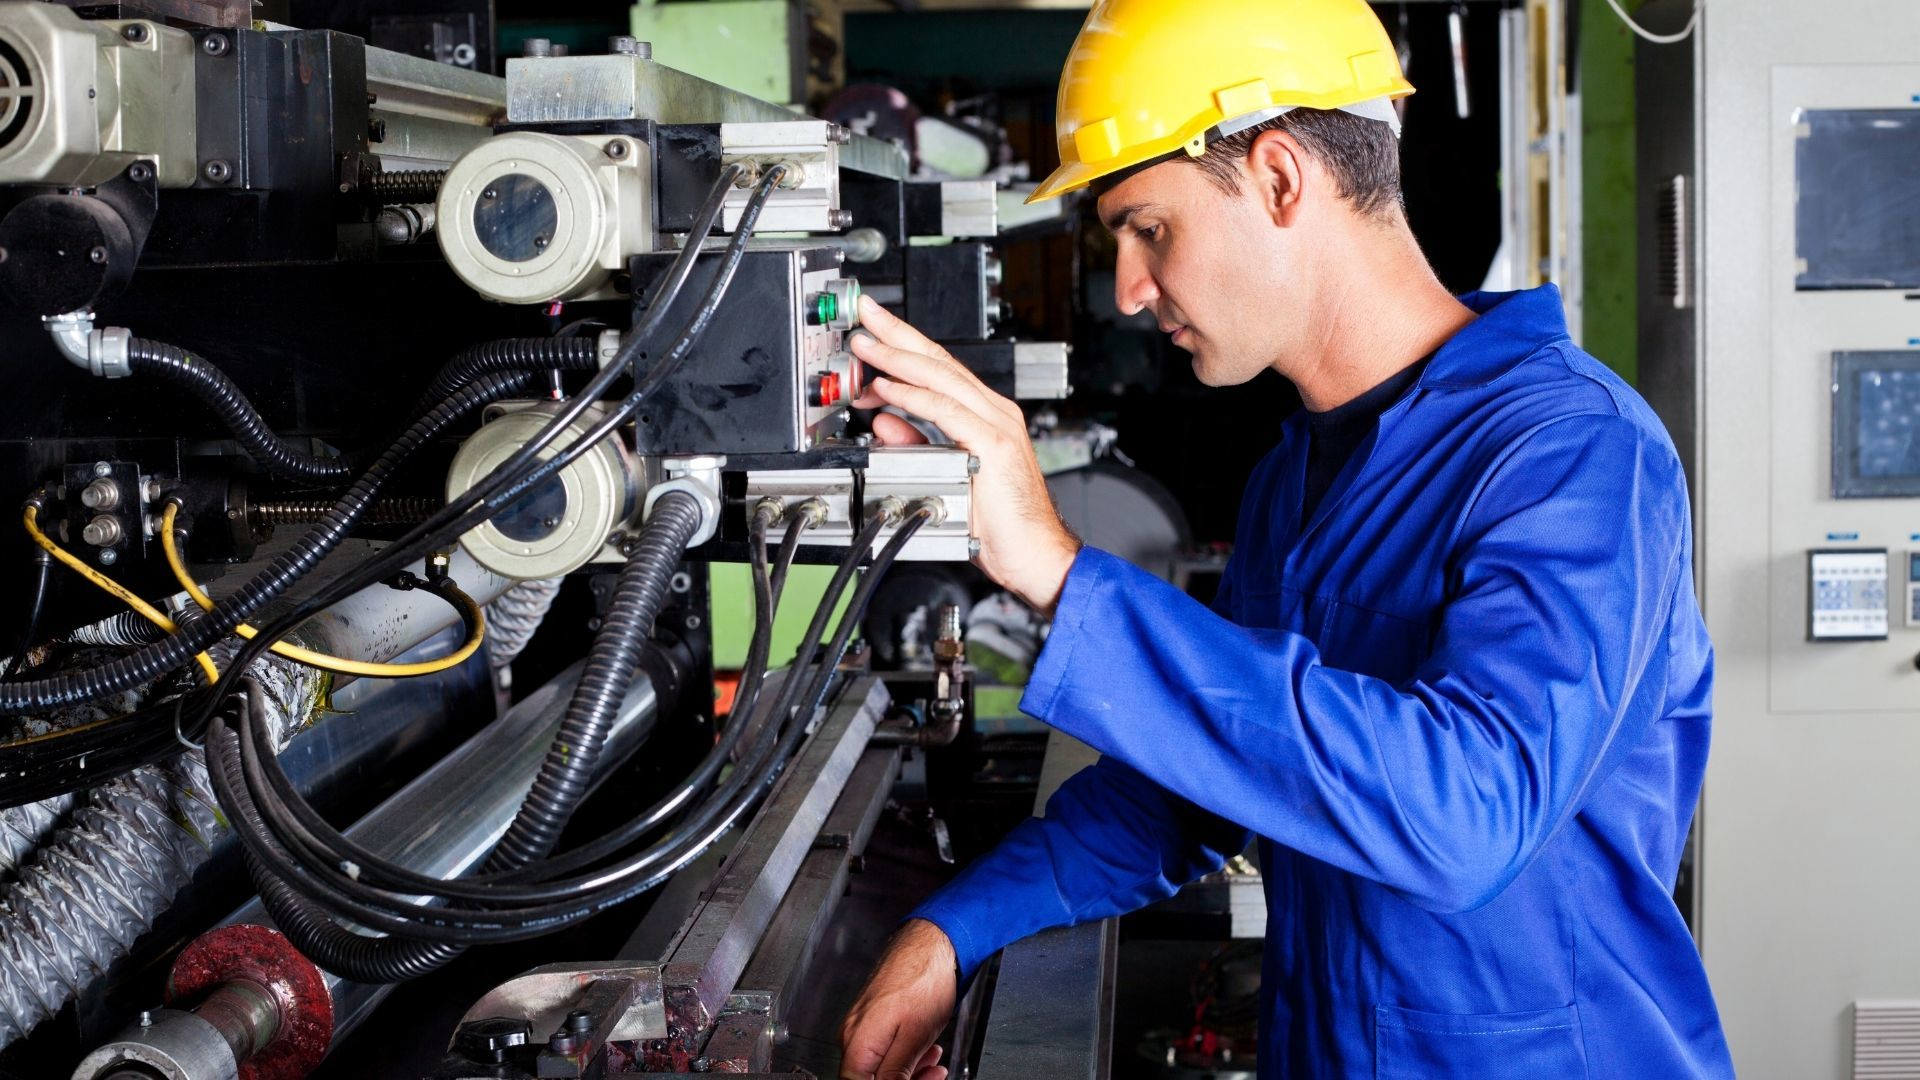 【Tokyo, Hino】 Medical Equipment Parts Assembly, Inspection, Machine Operation